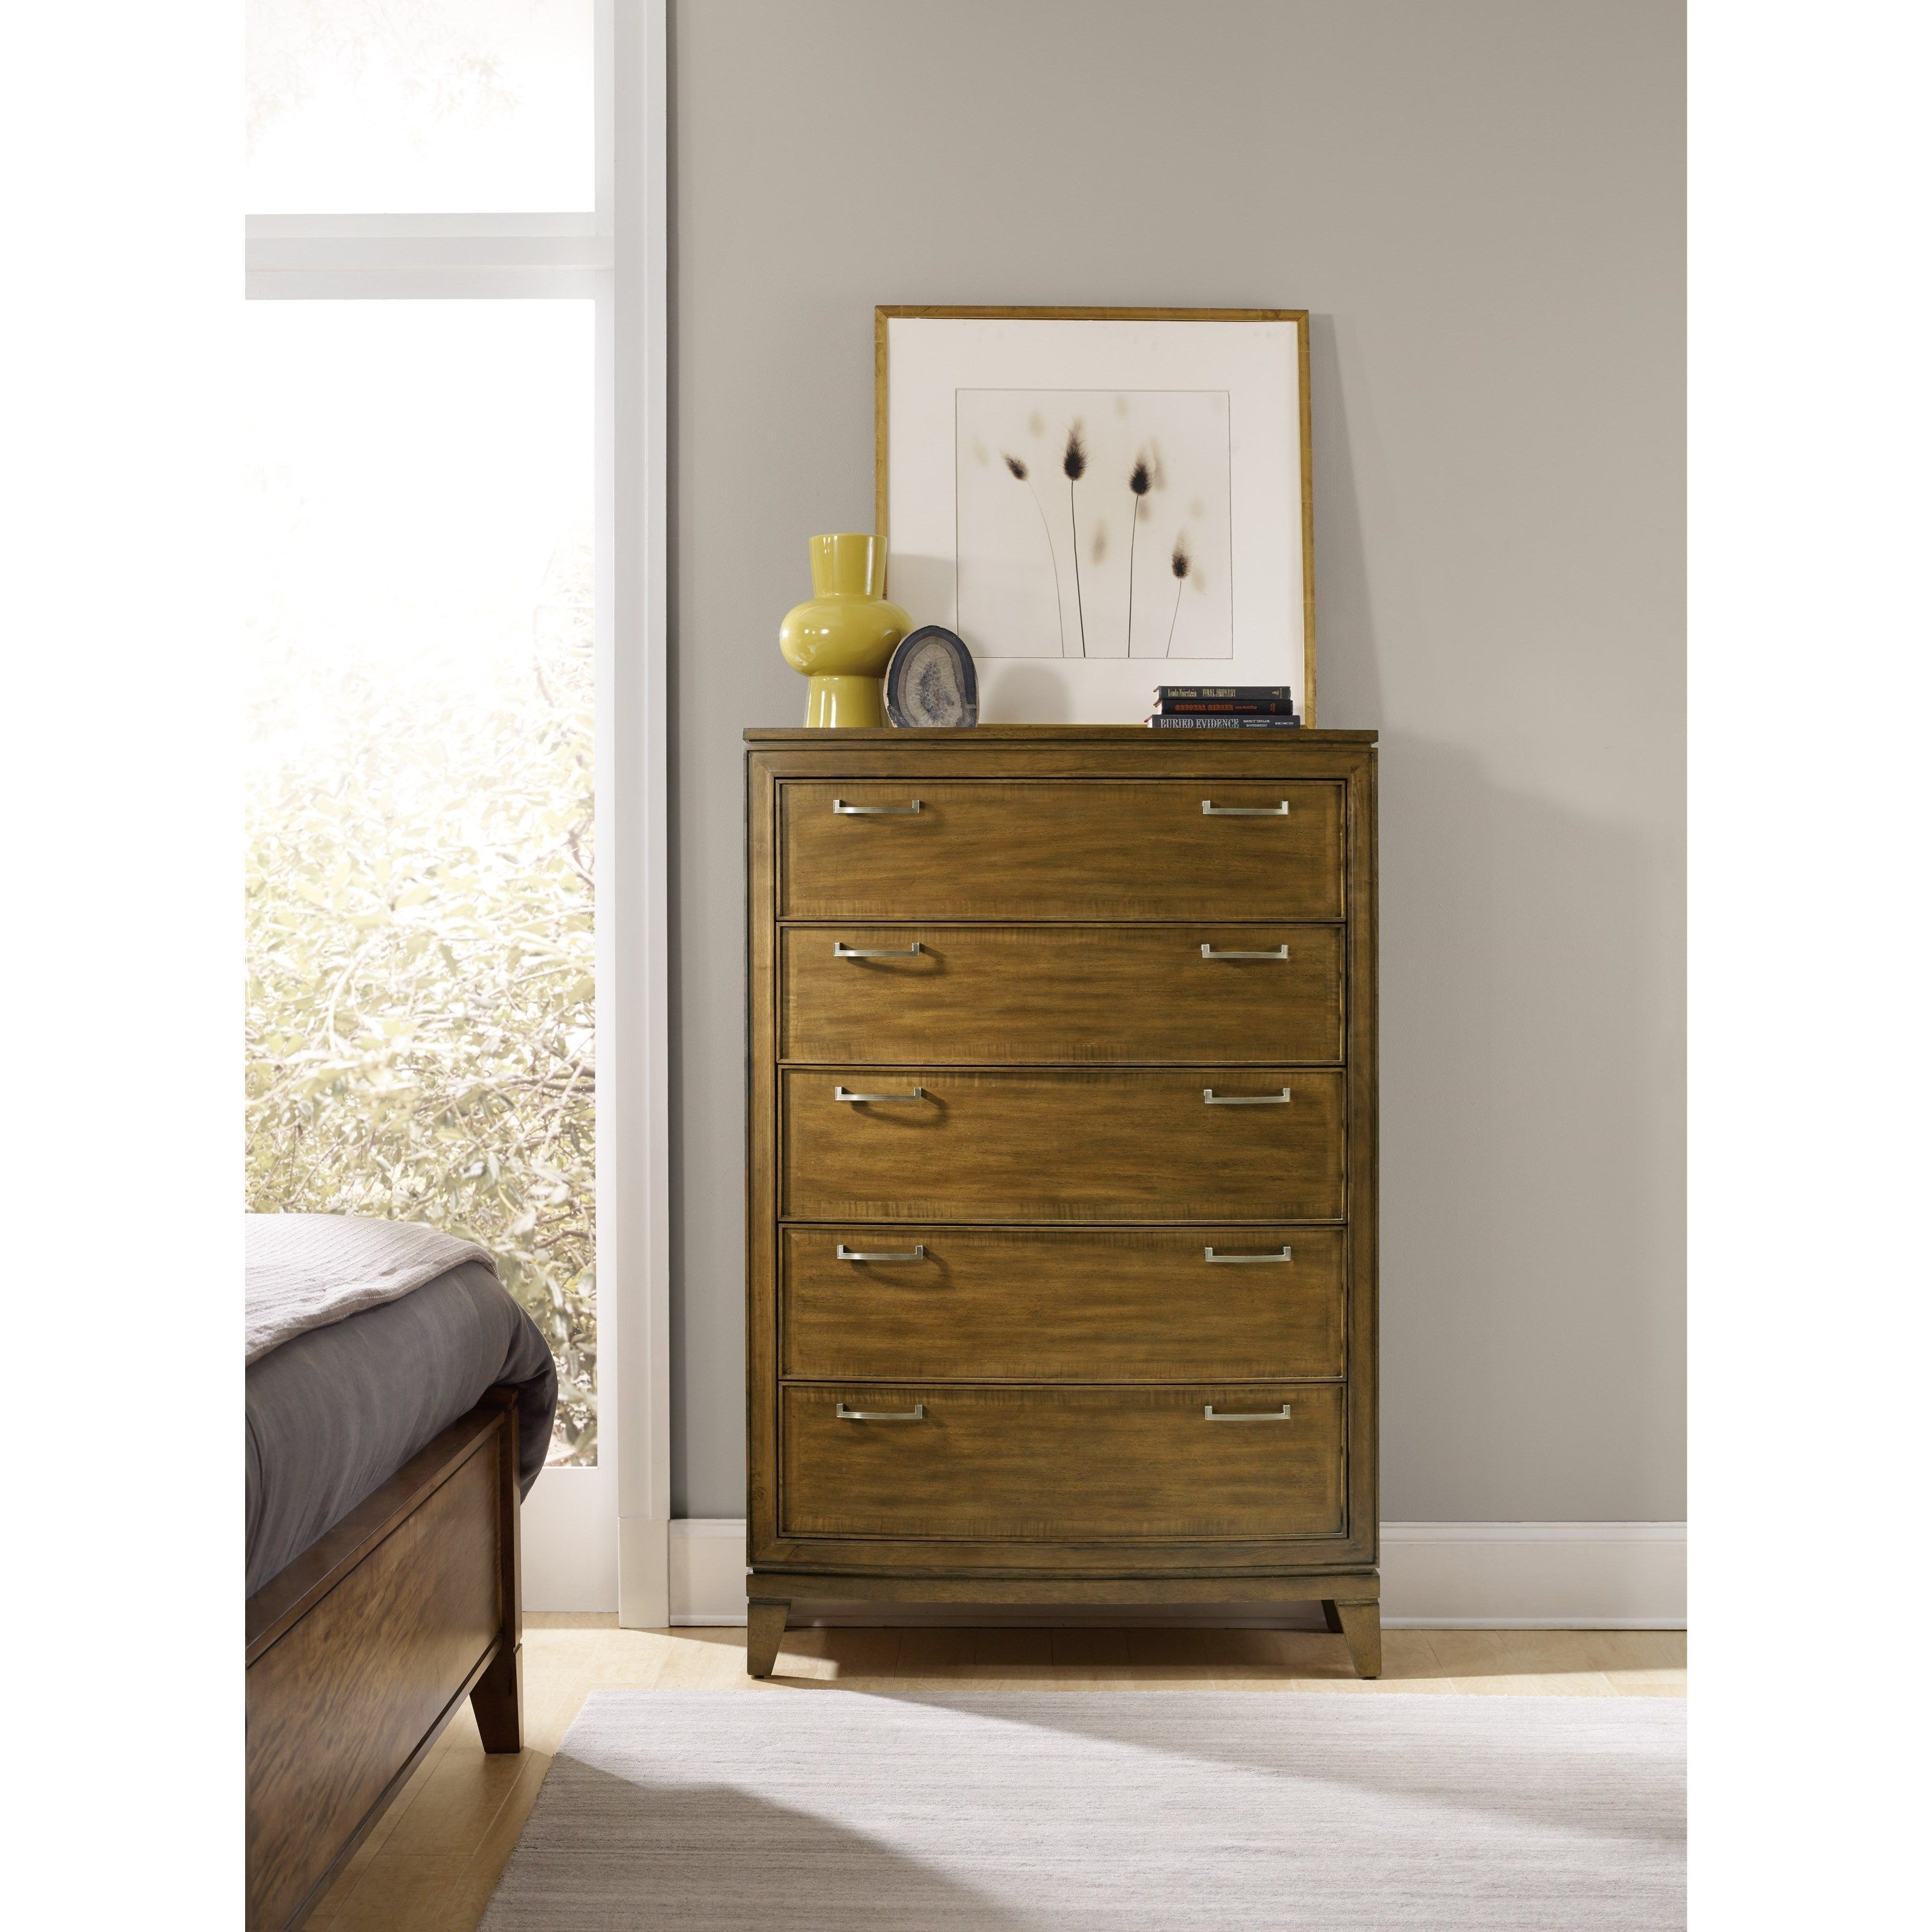 This transitional chest features exceptional storage space for your